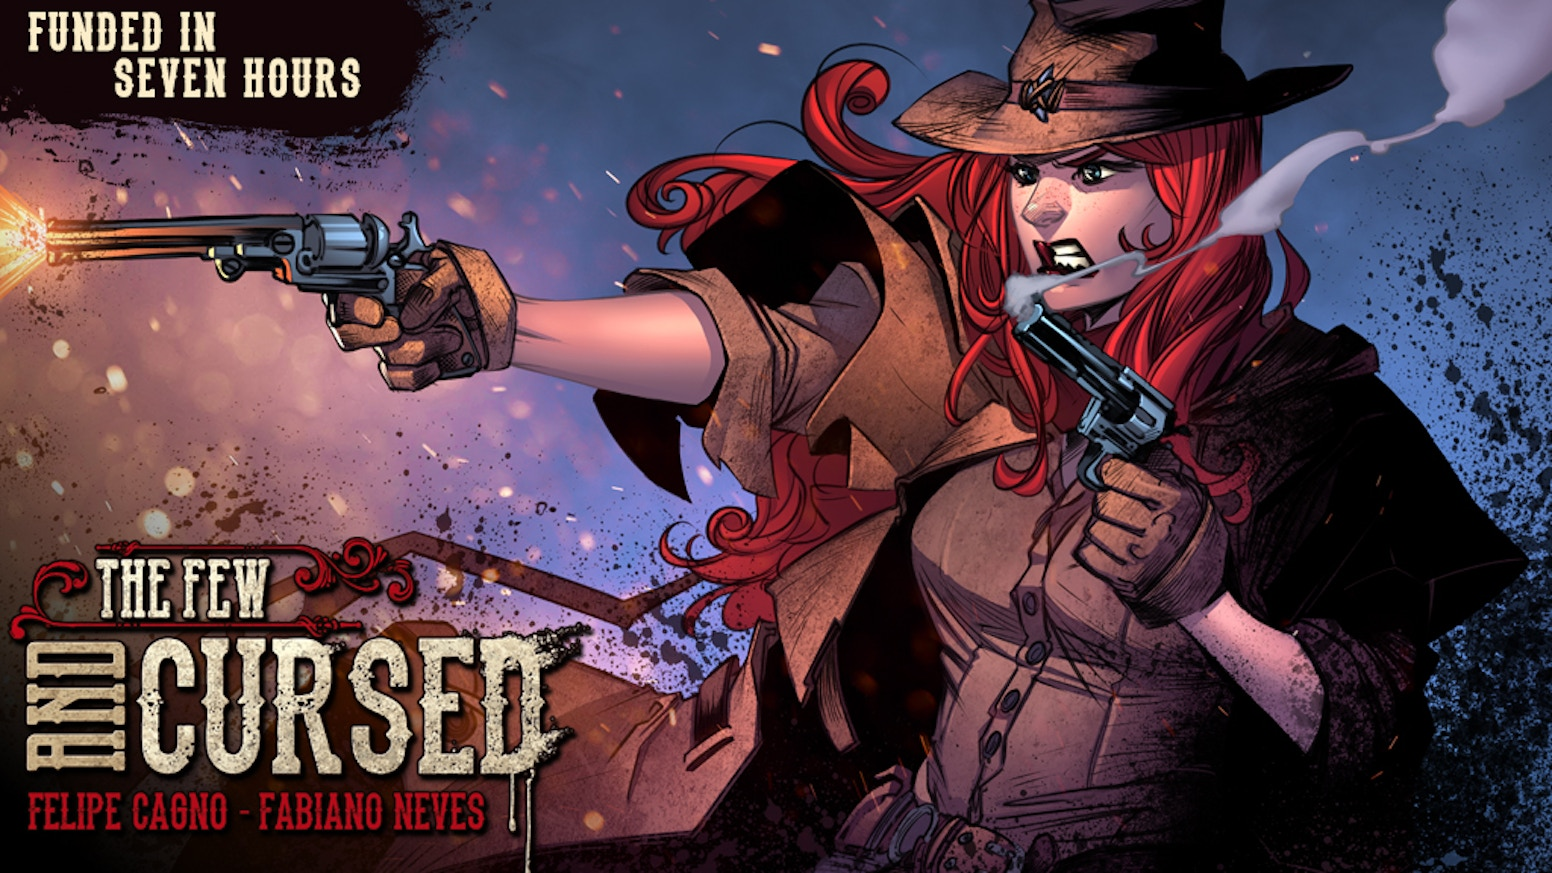 Join the Redhead in her hunt for The Crows of Mana'Olana in this epic supernatural western. Issues #1, #2 and #3 also available!